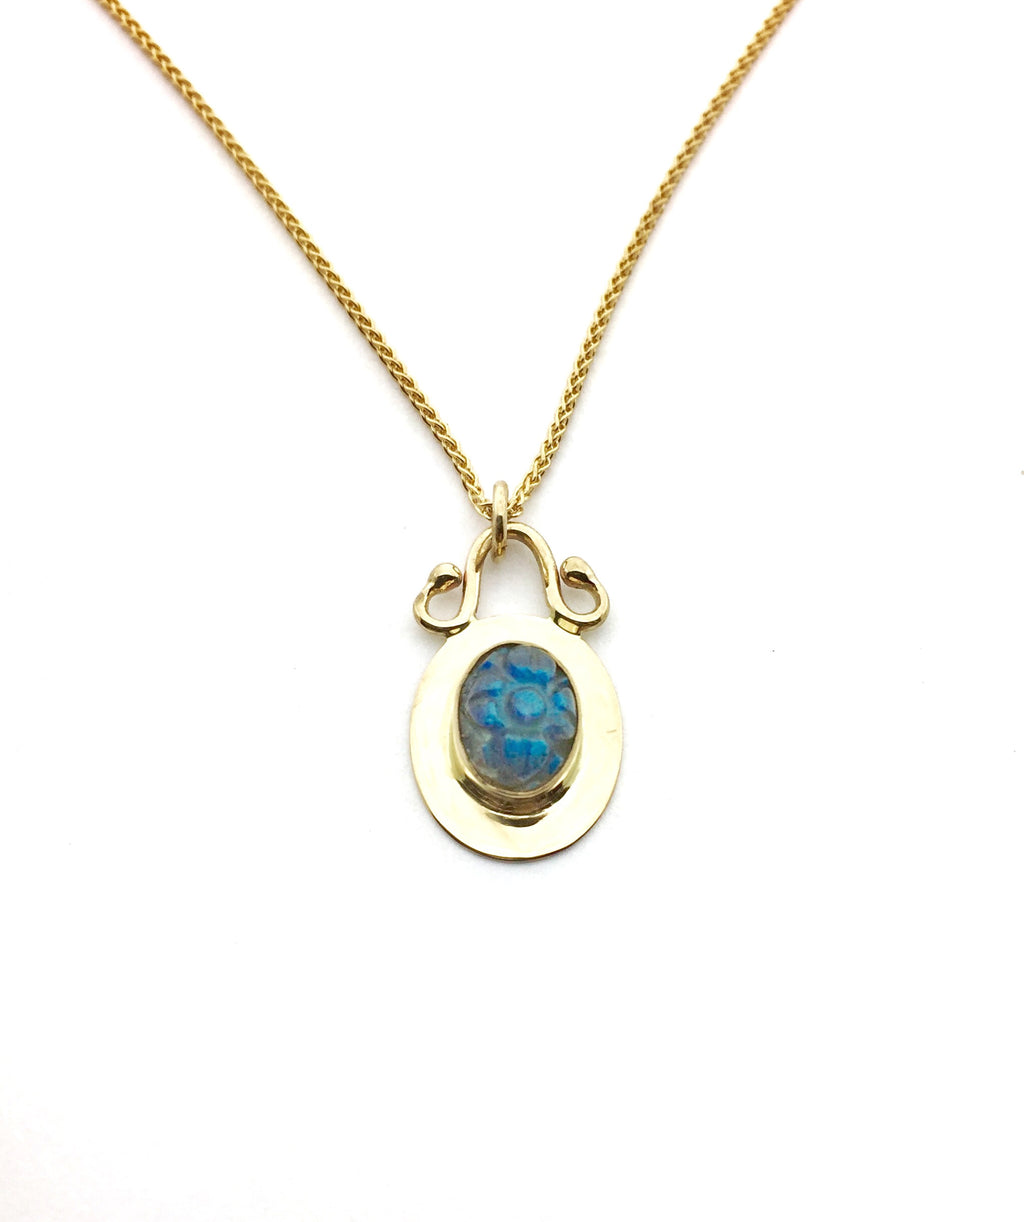 Gold Labradorite Pendant, 14k Yellow Gold with Carved Labradorite Necklace, Flower pendant in gold